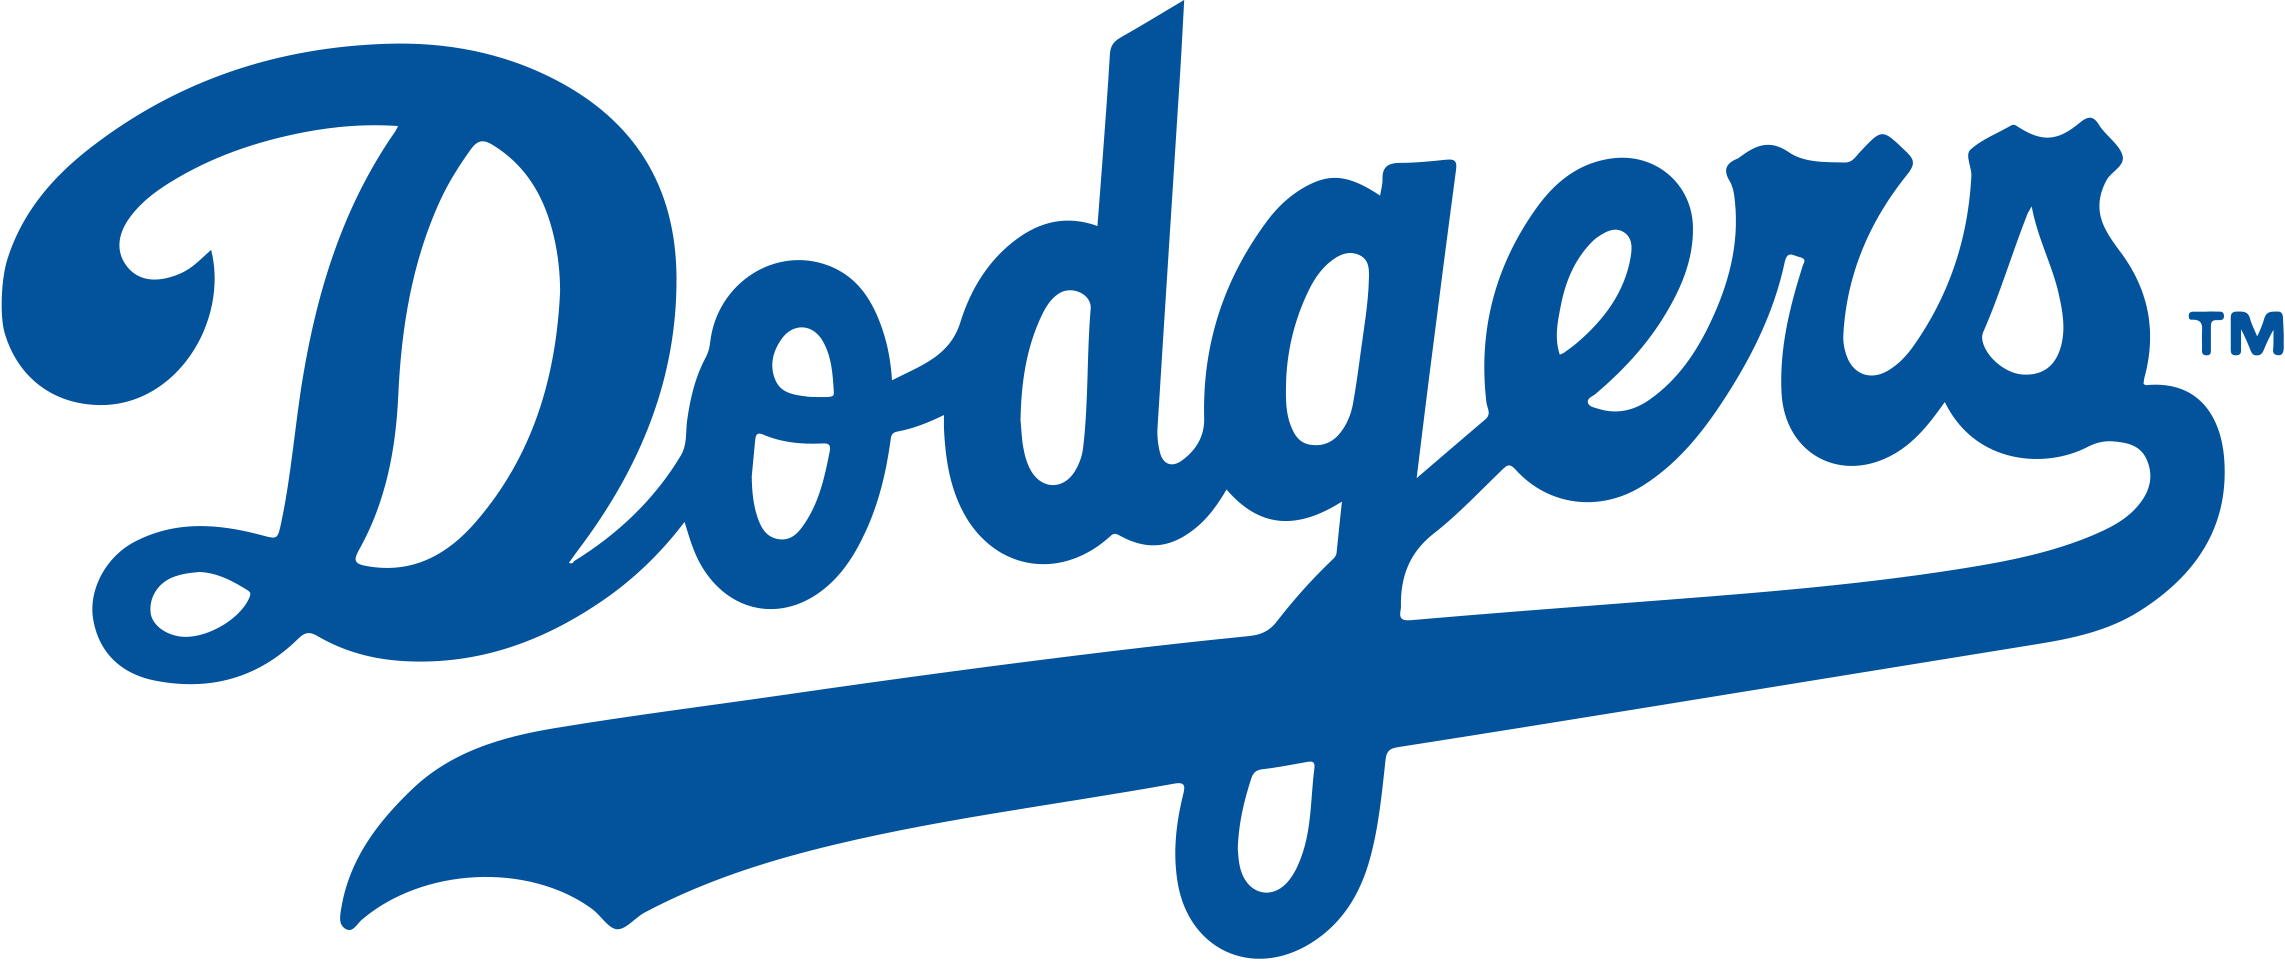 Brooklyn los angeles chicago. Dodgers drawing vector freeuse download